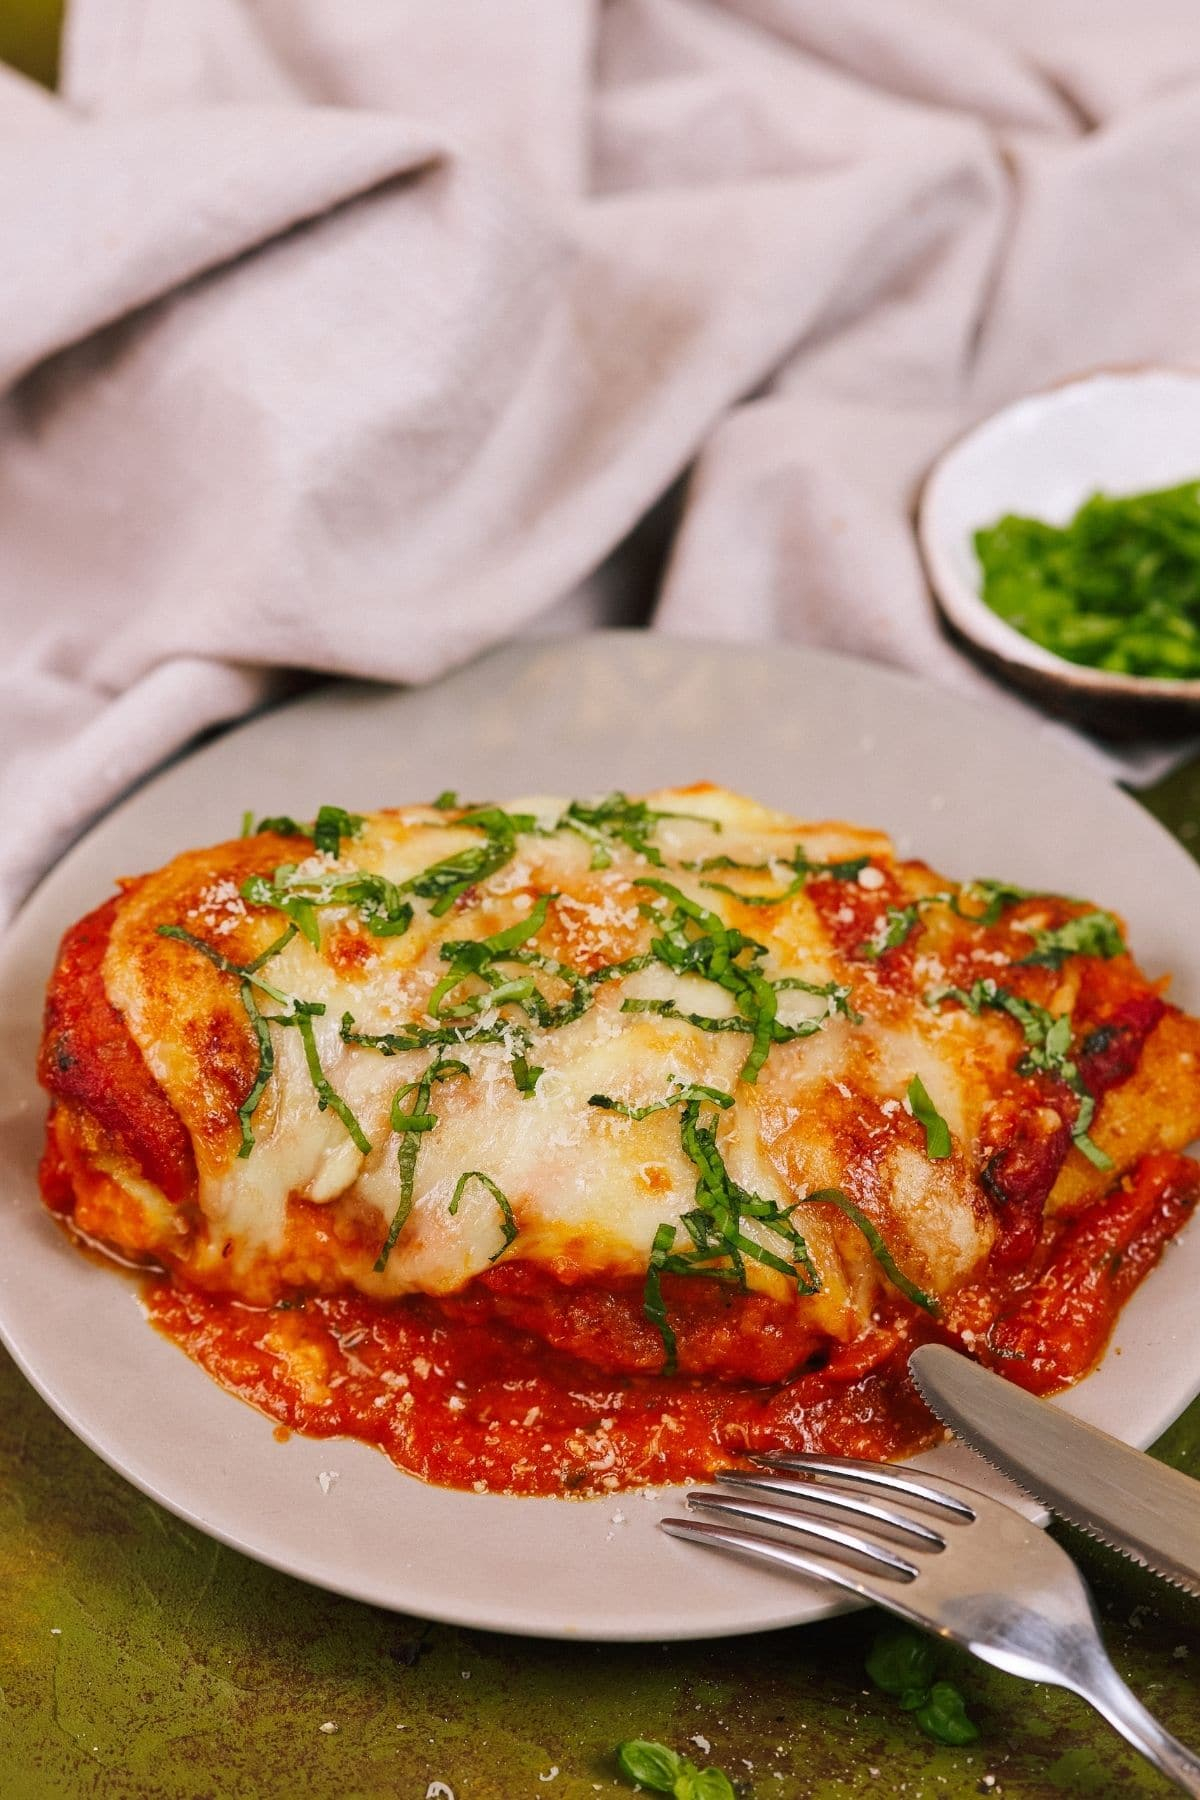 Plate of chicken in tomato sauce on green table with cloth napkin